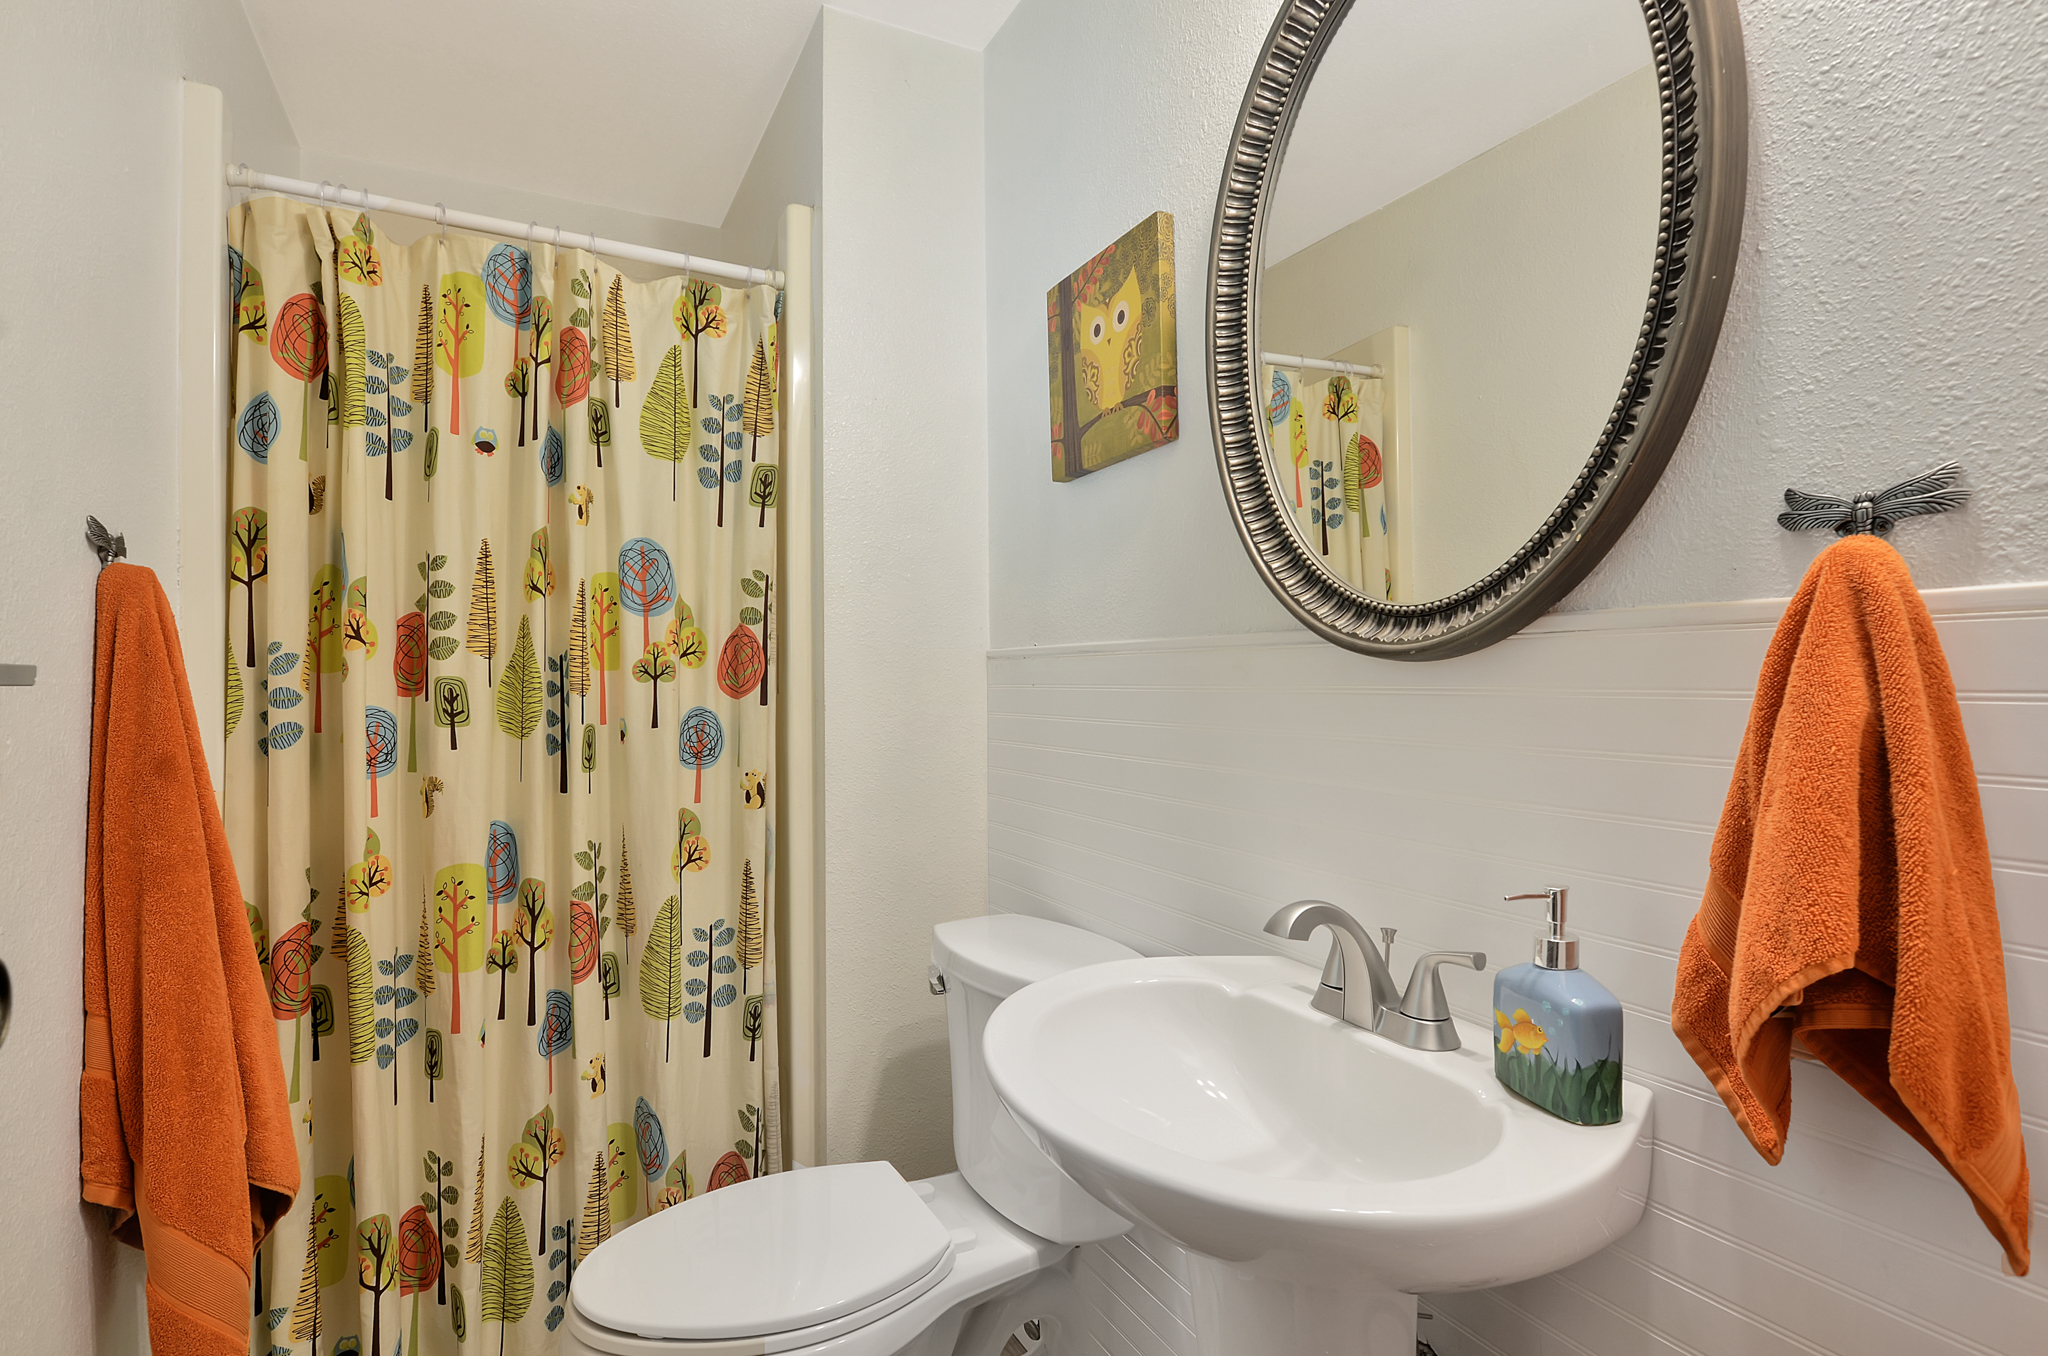 The private 3/4 bath is all set with bamboo flooring, a new toilet, and new pedestal sink. The clean white color scheme invites you to bring your own style and color to the room. You can make it pop with bold and friendly colors, choose soft florals, or neutrals. Anything goes!